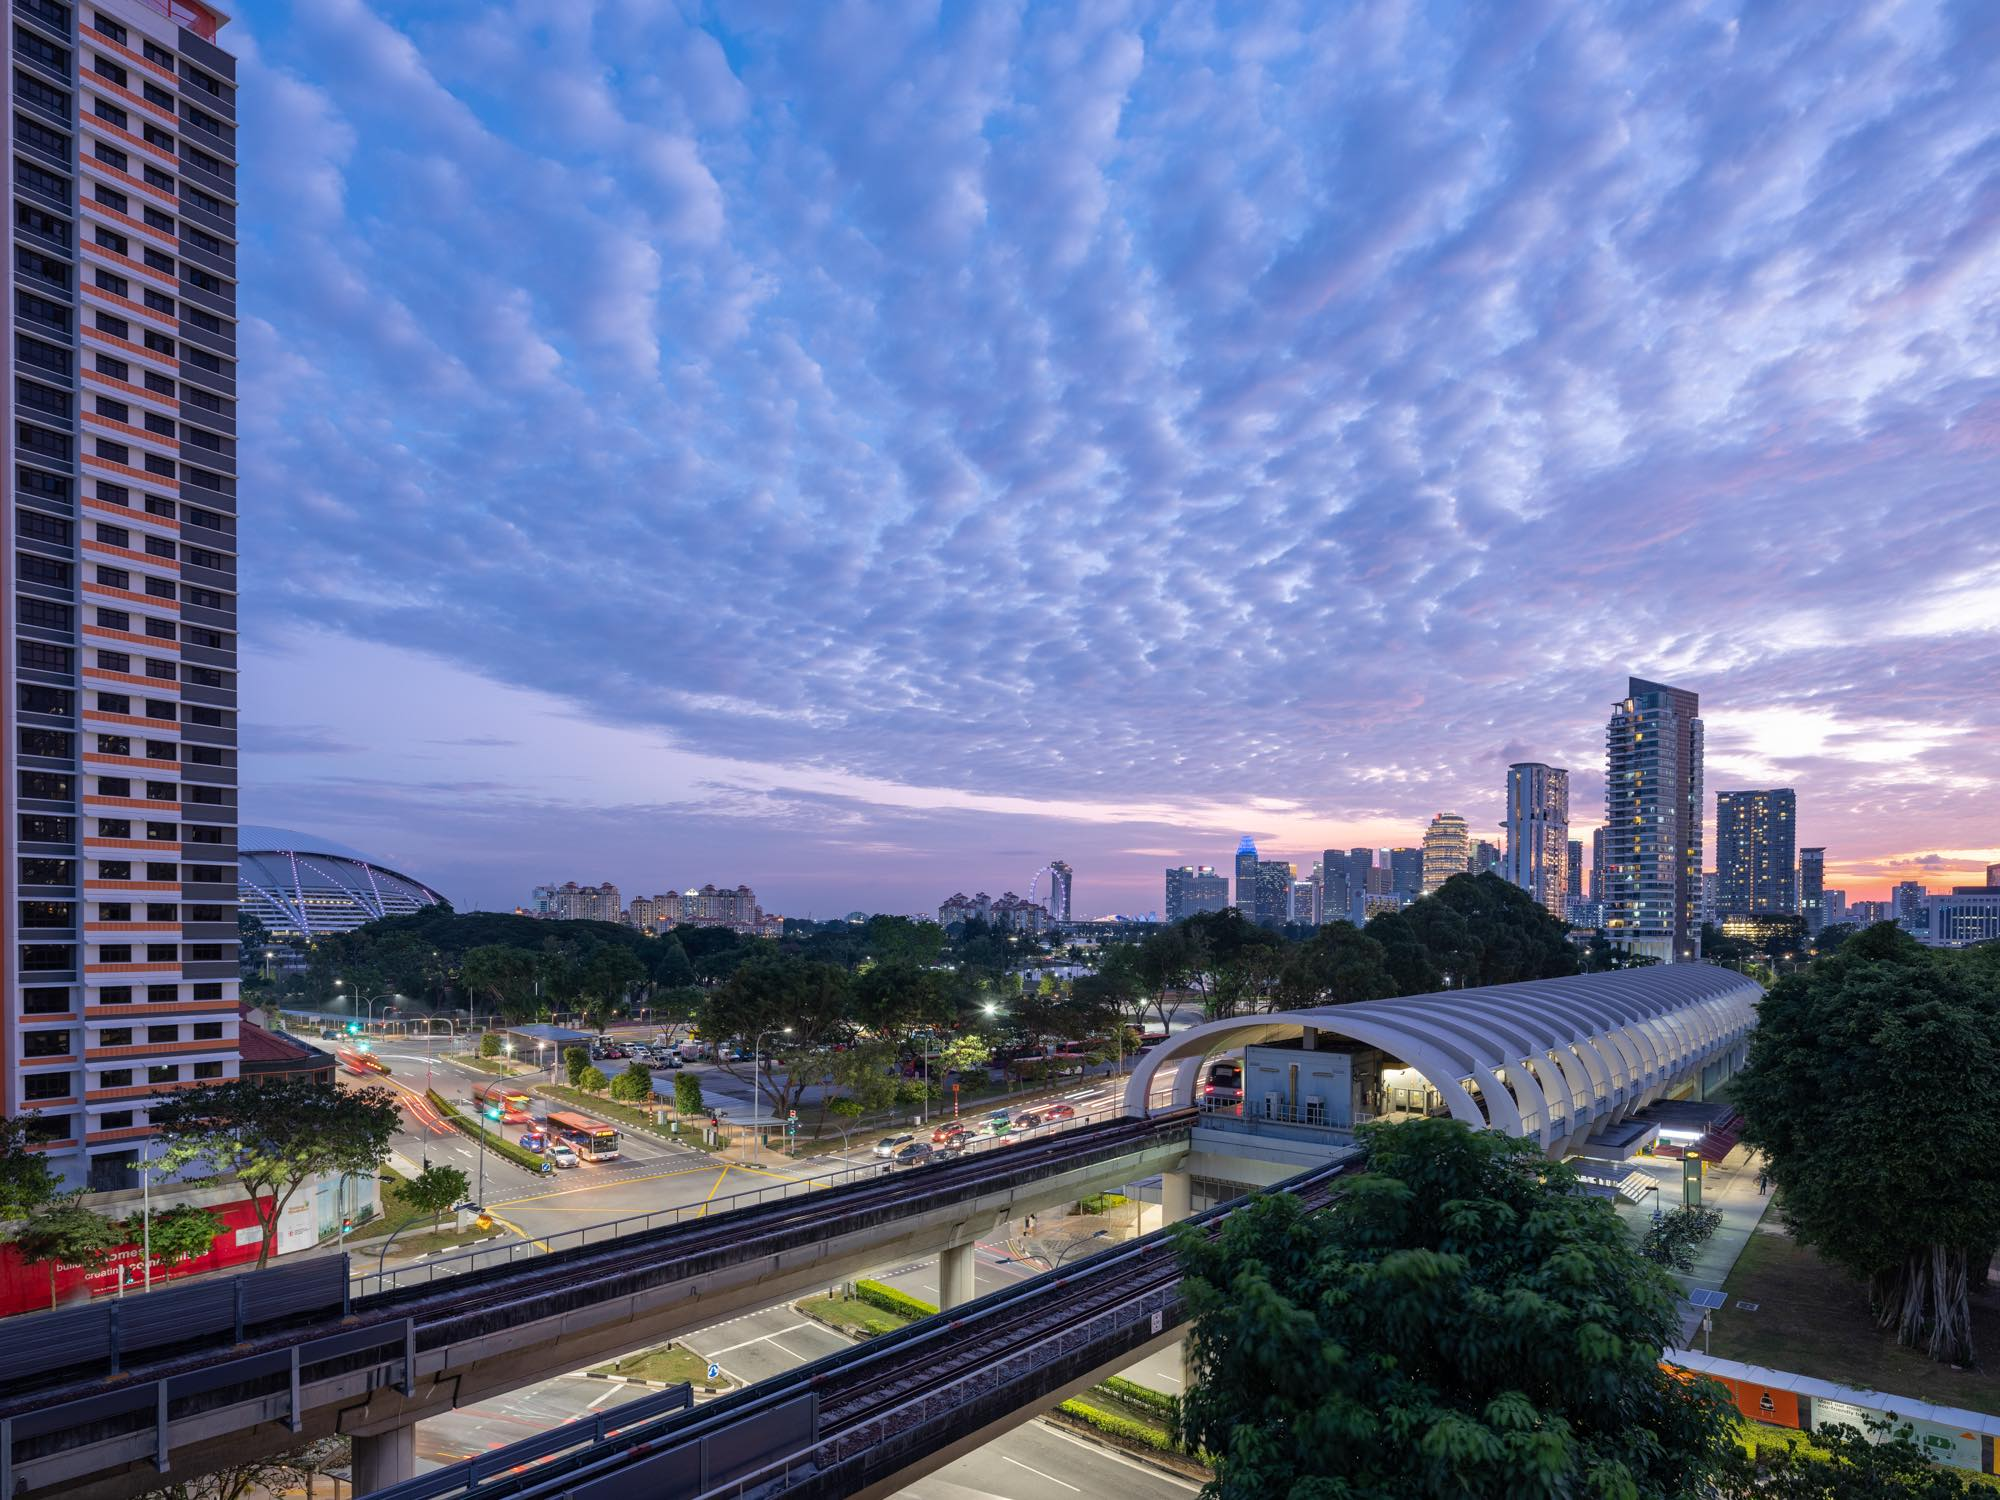 MRT Commercial Photography Singapore Coco Creative Studio Skyline-3